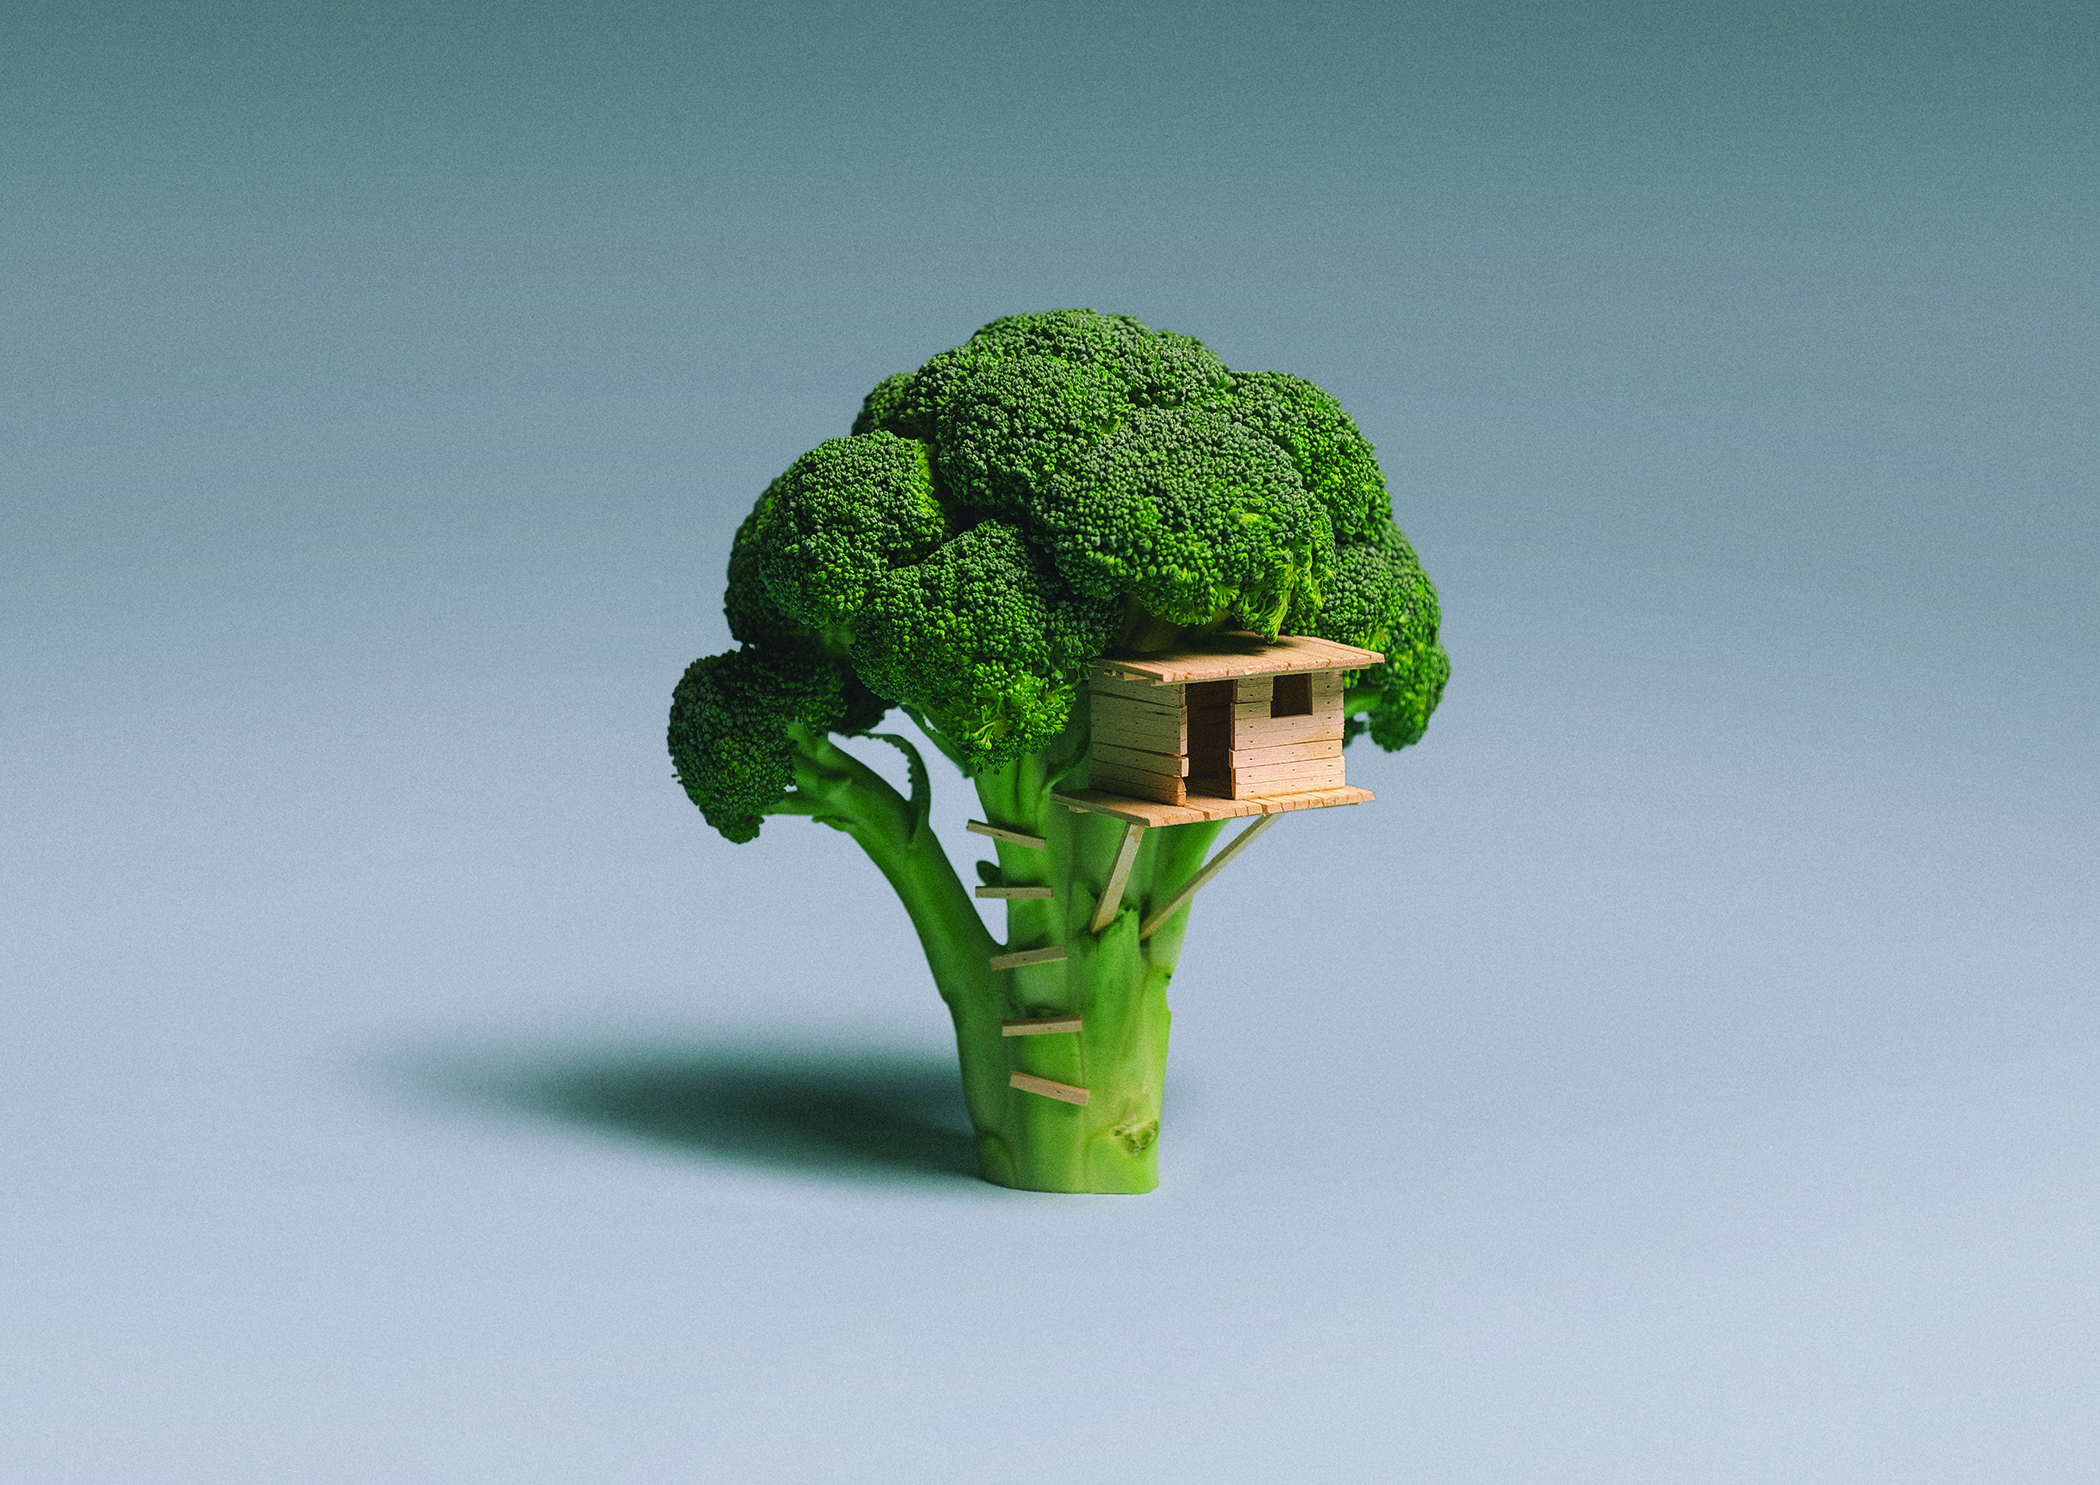 Broccoli_House_lo-res.jpg